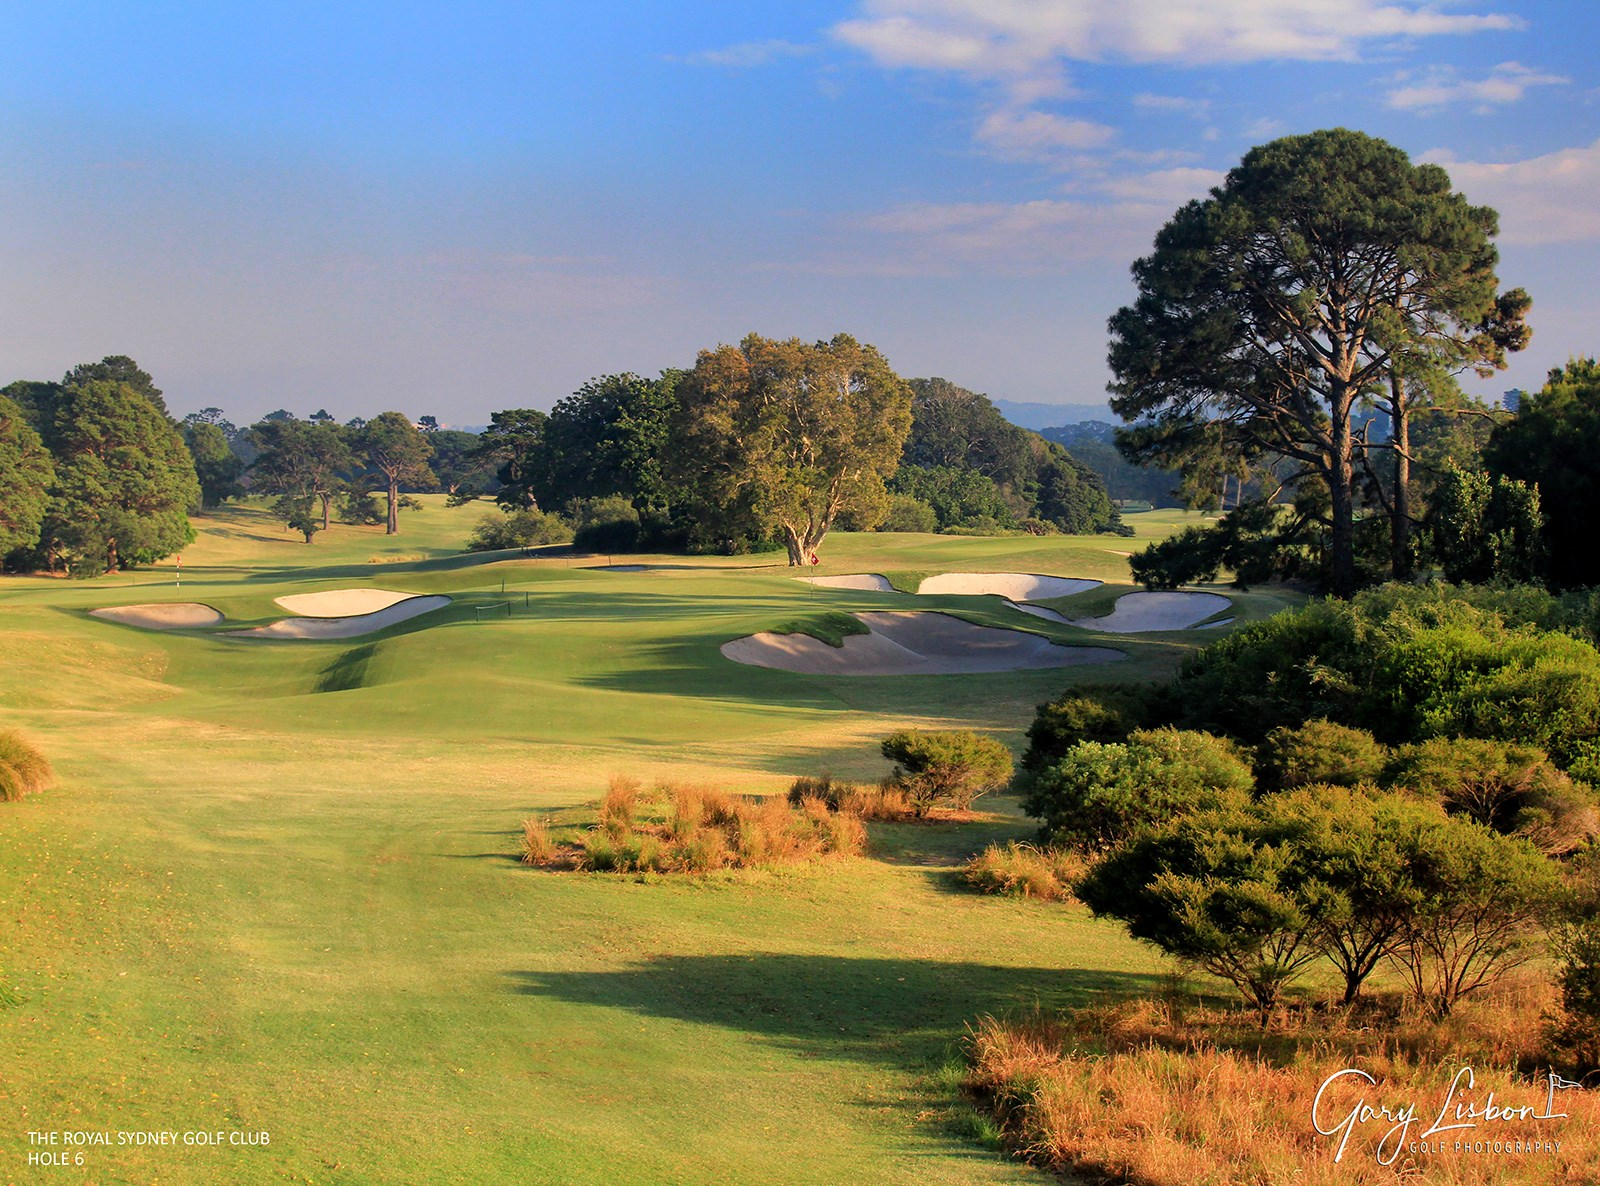 Royal Sydney Golf Club Hole 6